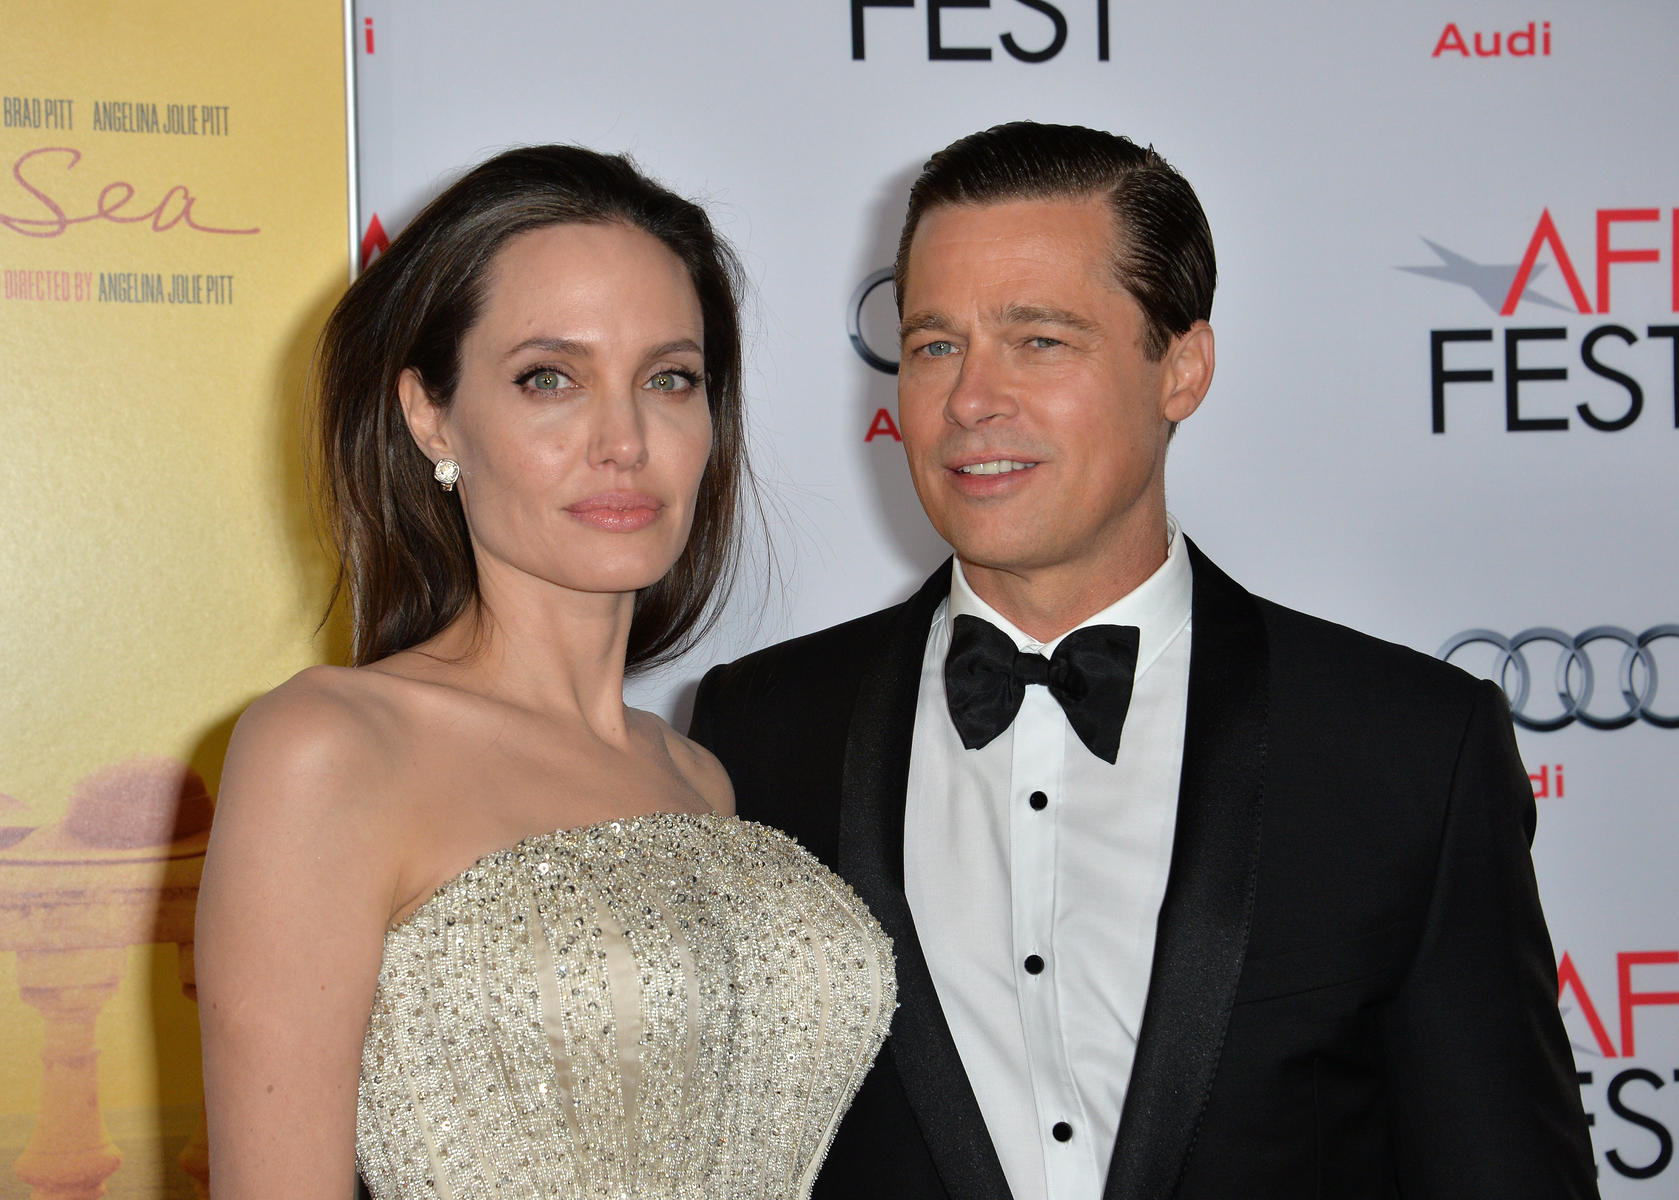 Angelina Jolie Could Lose Primary Custody of Kids If Brad Pitt Isn't Allowed Access